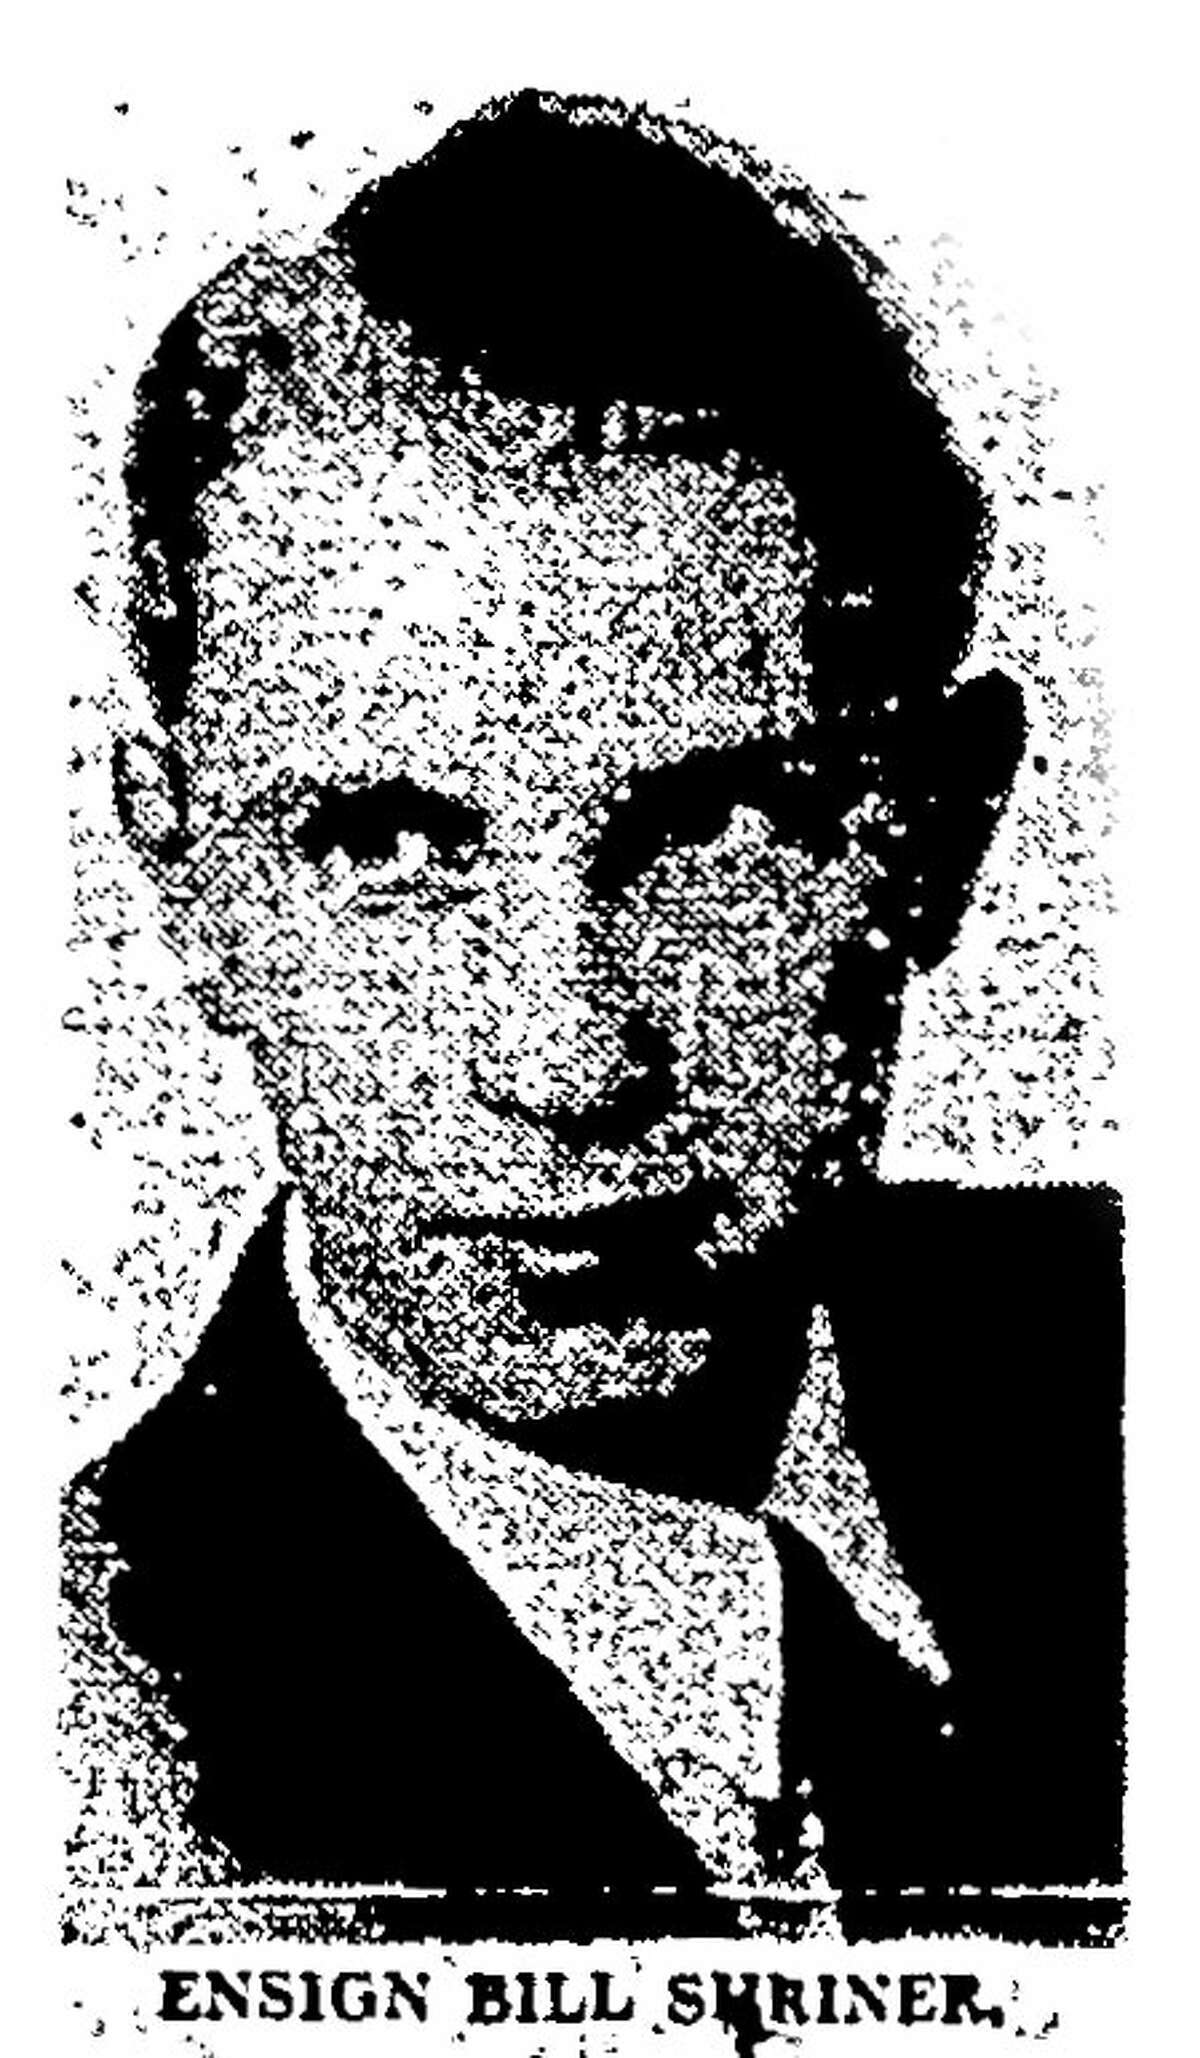 Ens. William Shriner (As it appeared in the Houston Chronicle Vol. 43 No. 239 Houston, Texas, Thursday June 8, 1944)